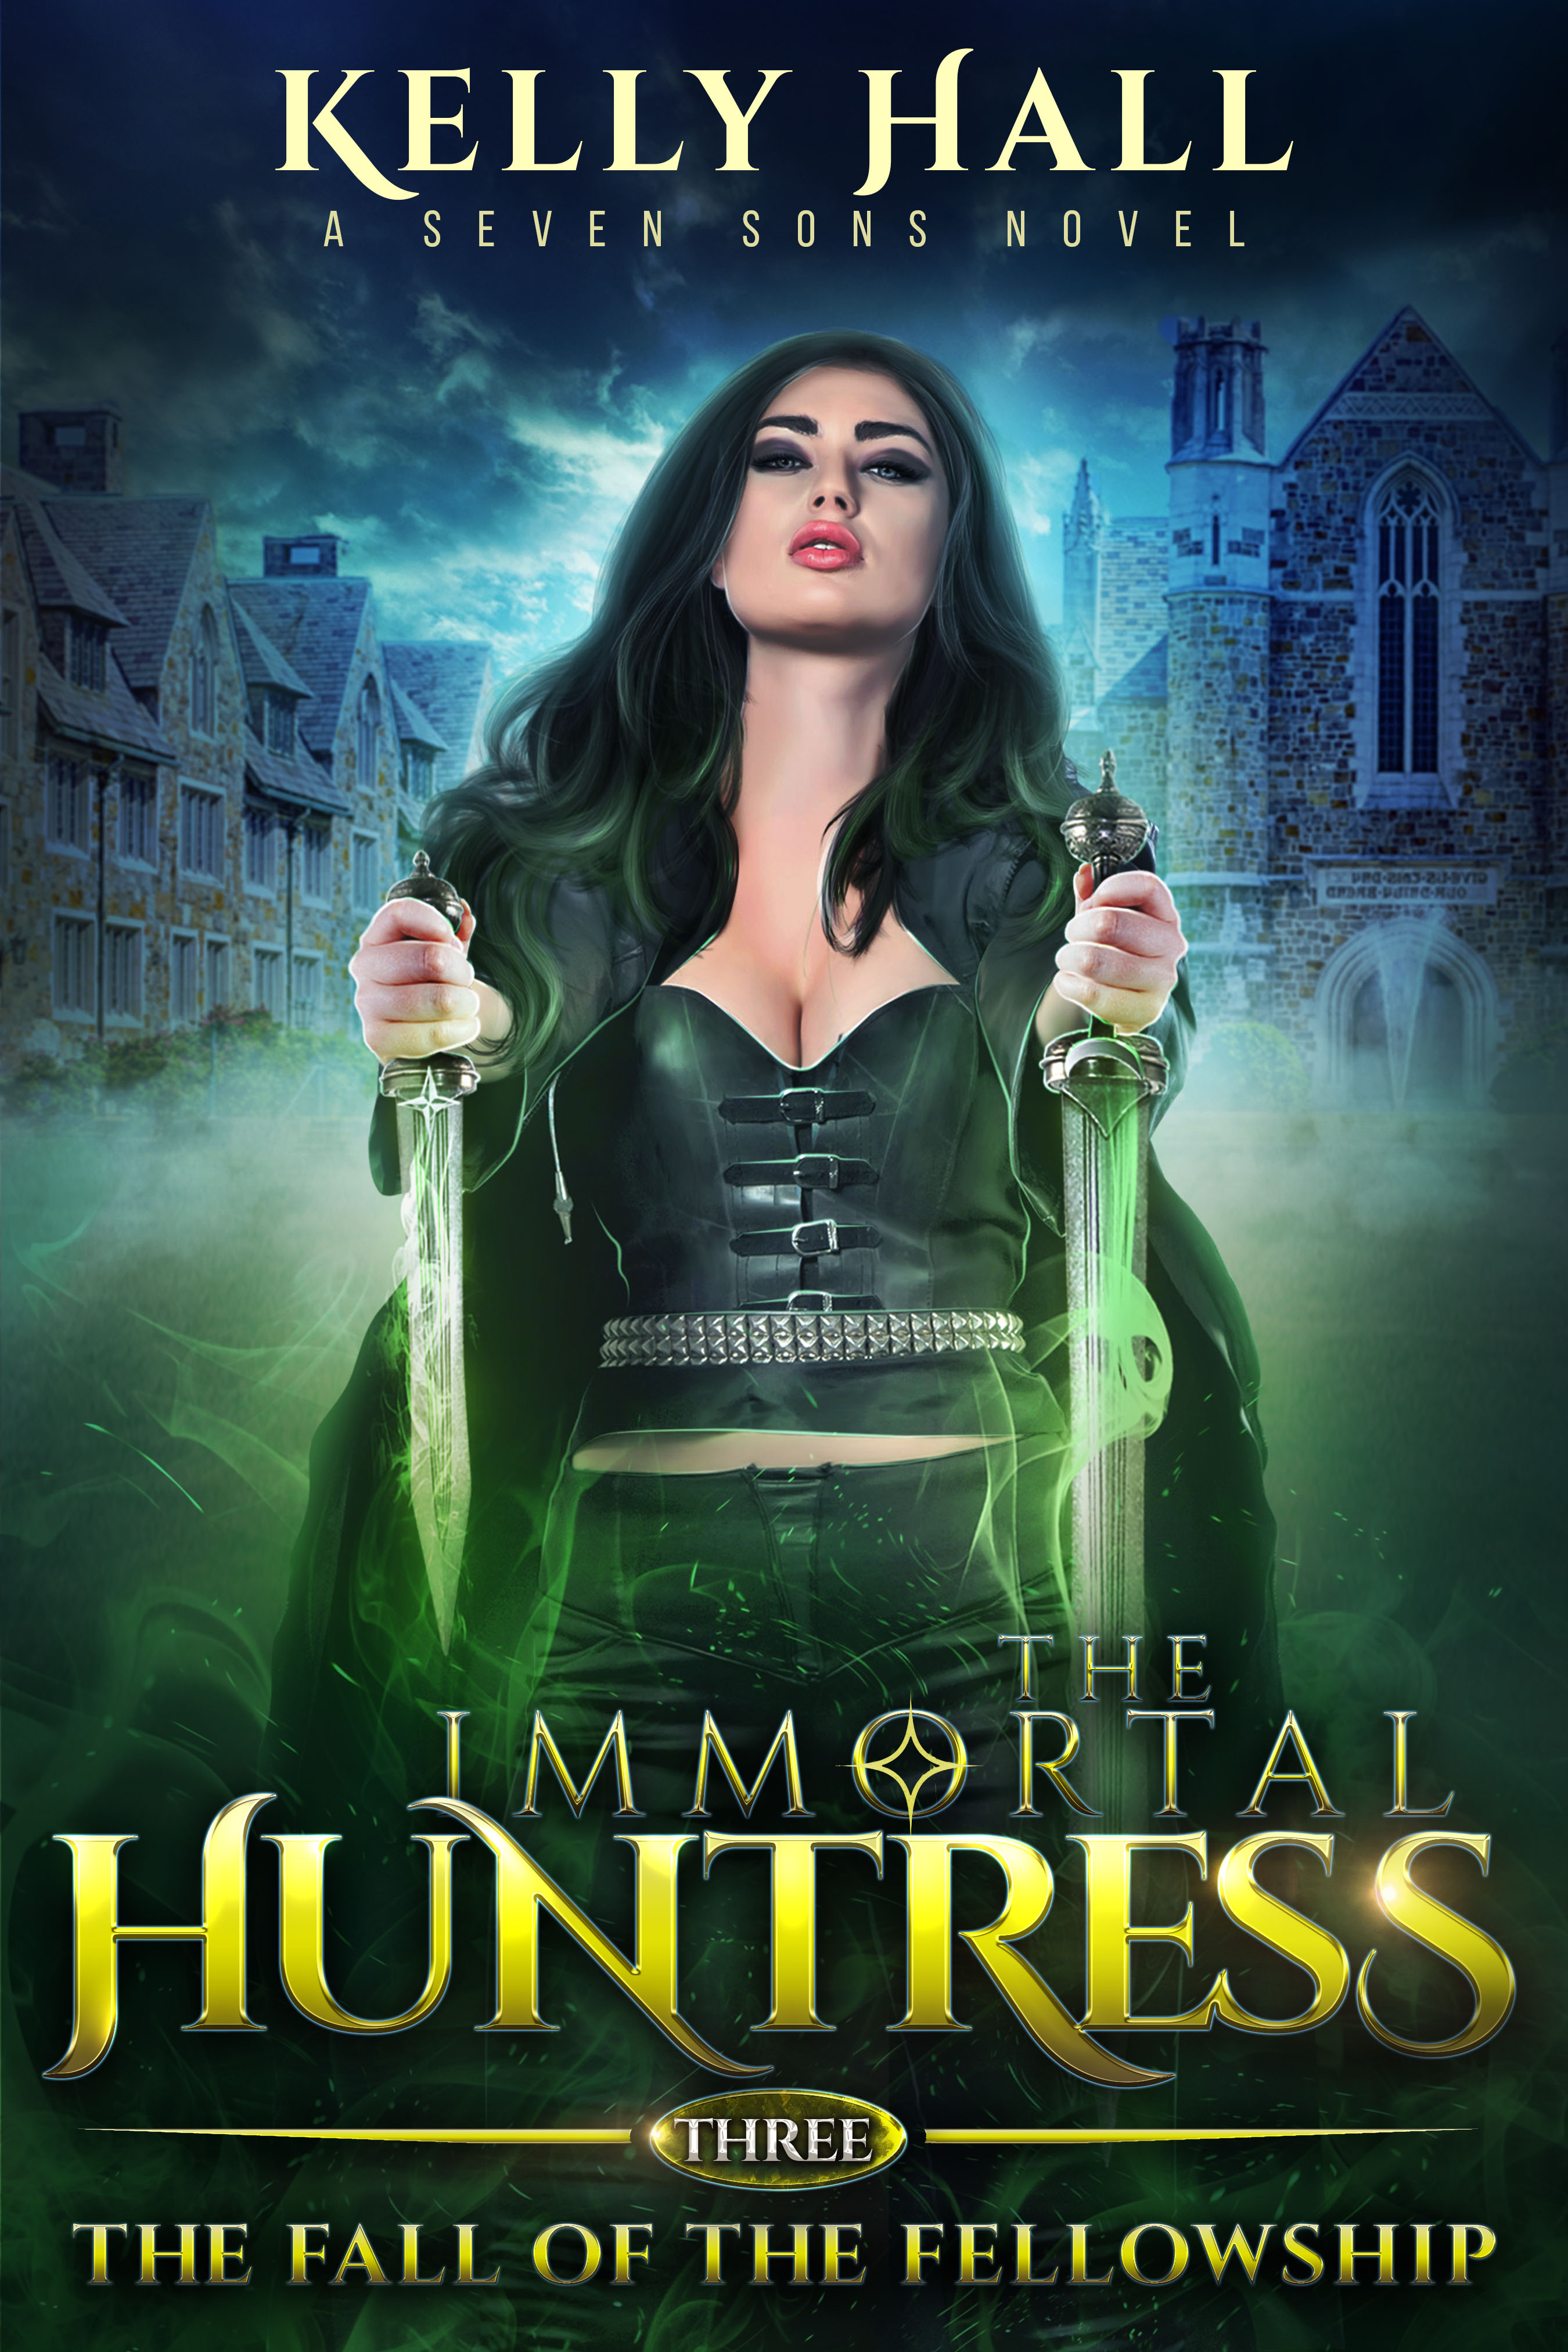 ImmortalHuntress Book 3